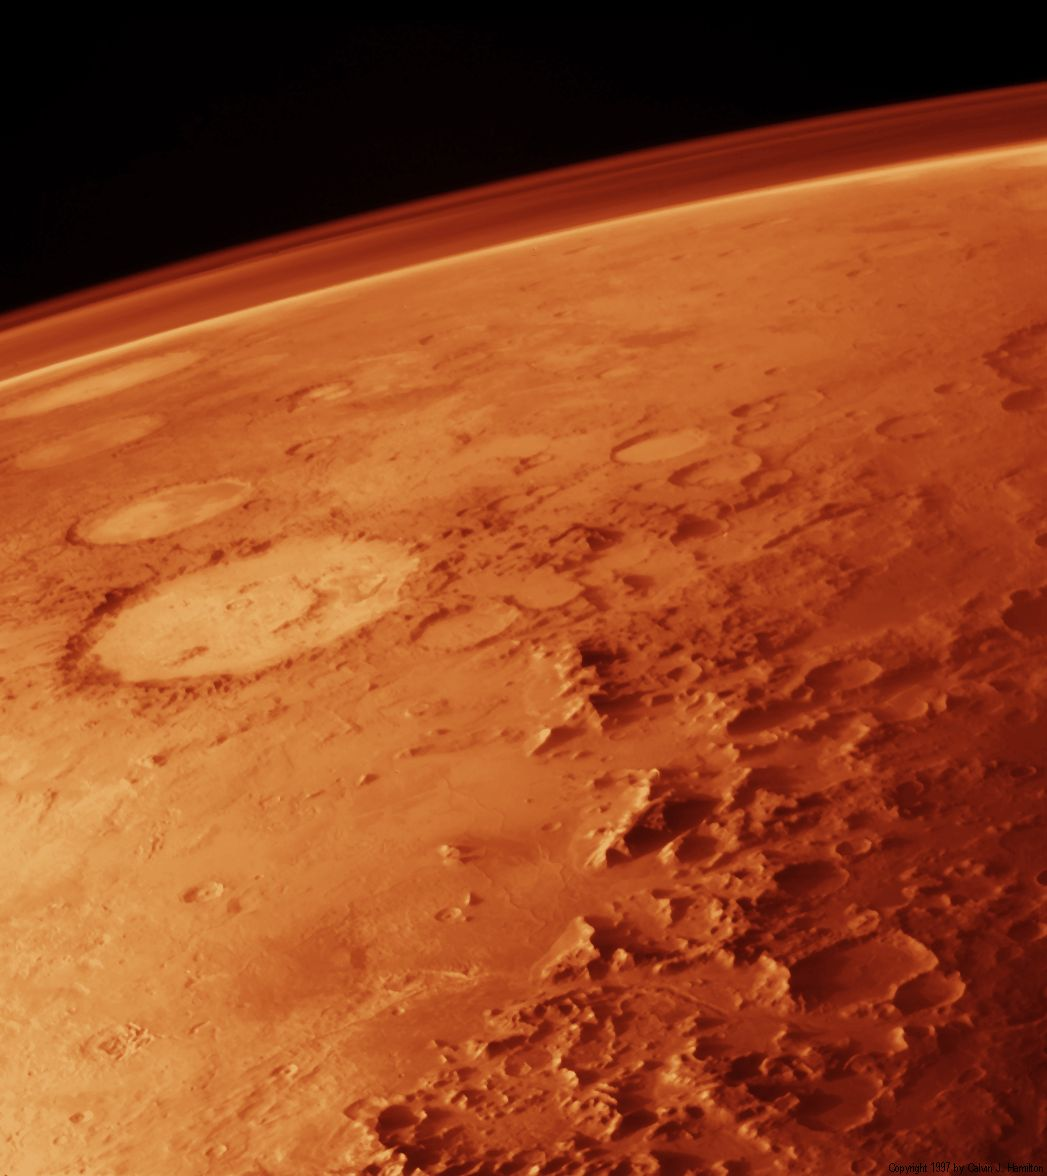 Oxygen Discovered On Mars, The Evidence For Martian Life Is Mounting